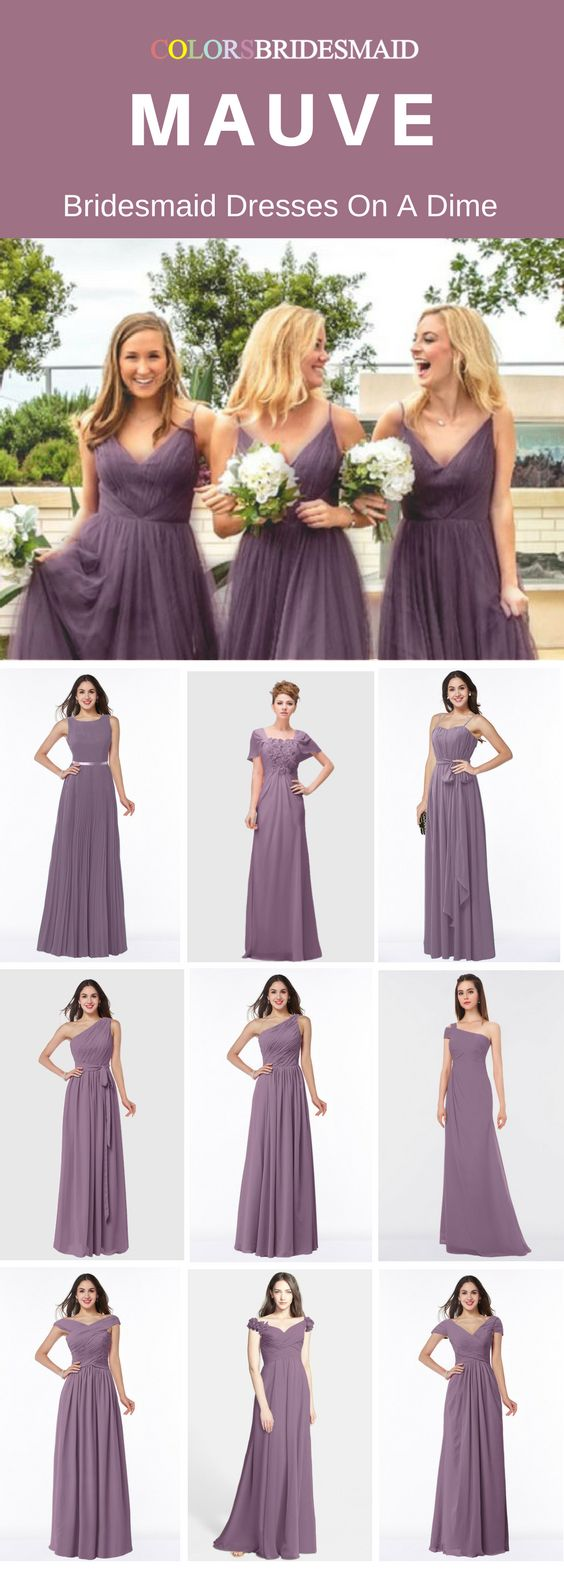 Mauve Bridesmaid Dresses | Bridesmaid dresses plus size ...